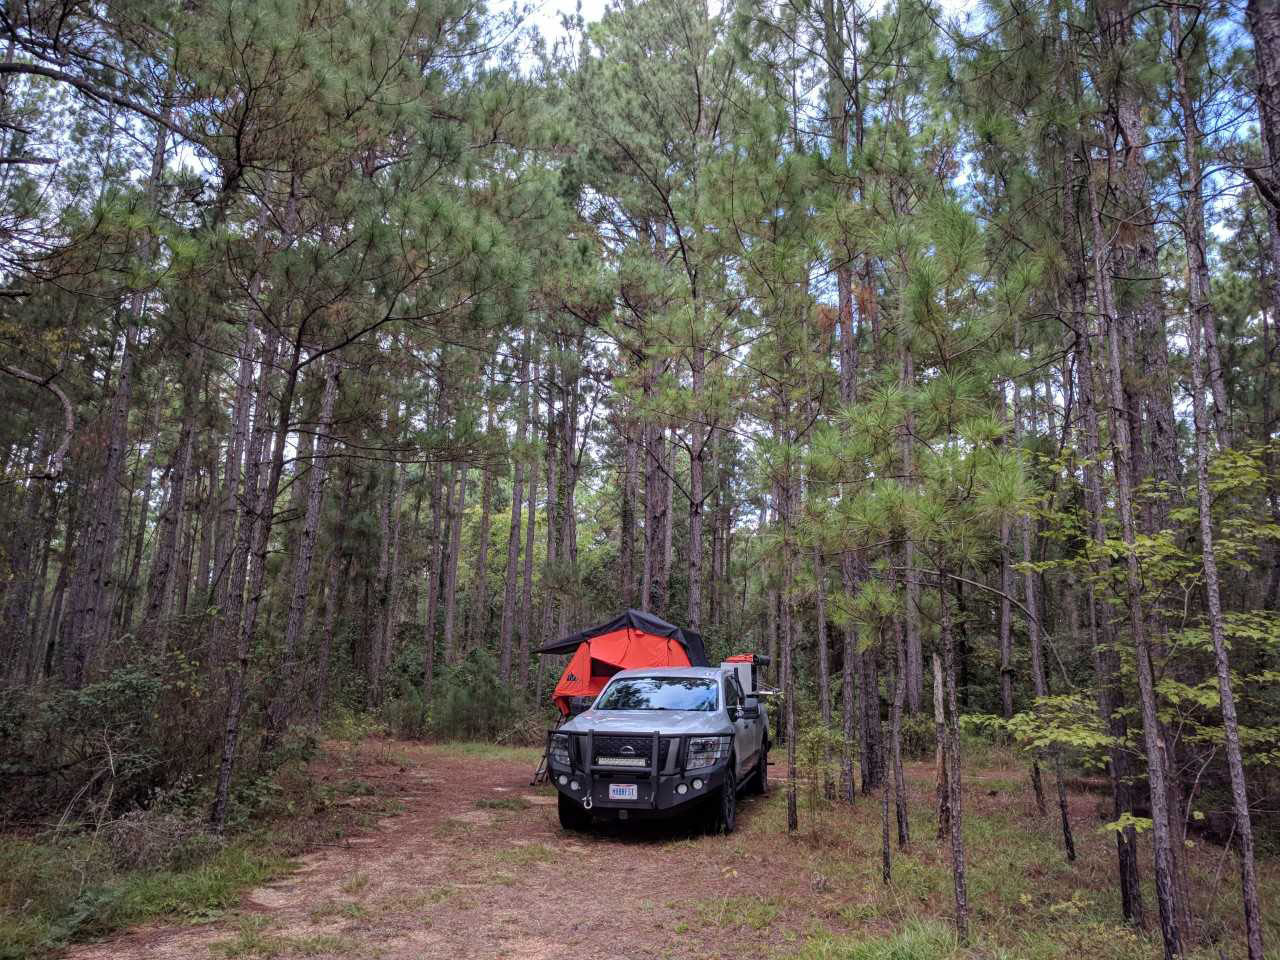 Mike Repas stops for a quick night's rest in the Kisatchie National Forest in Louisiana.